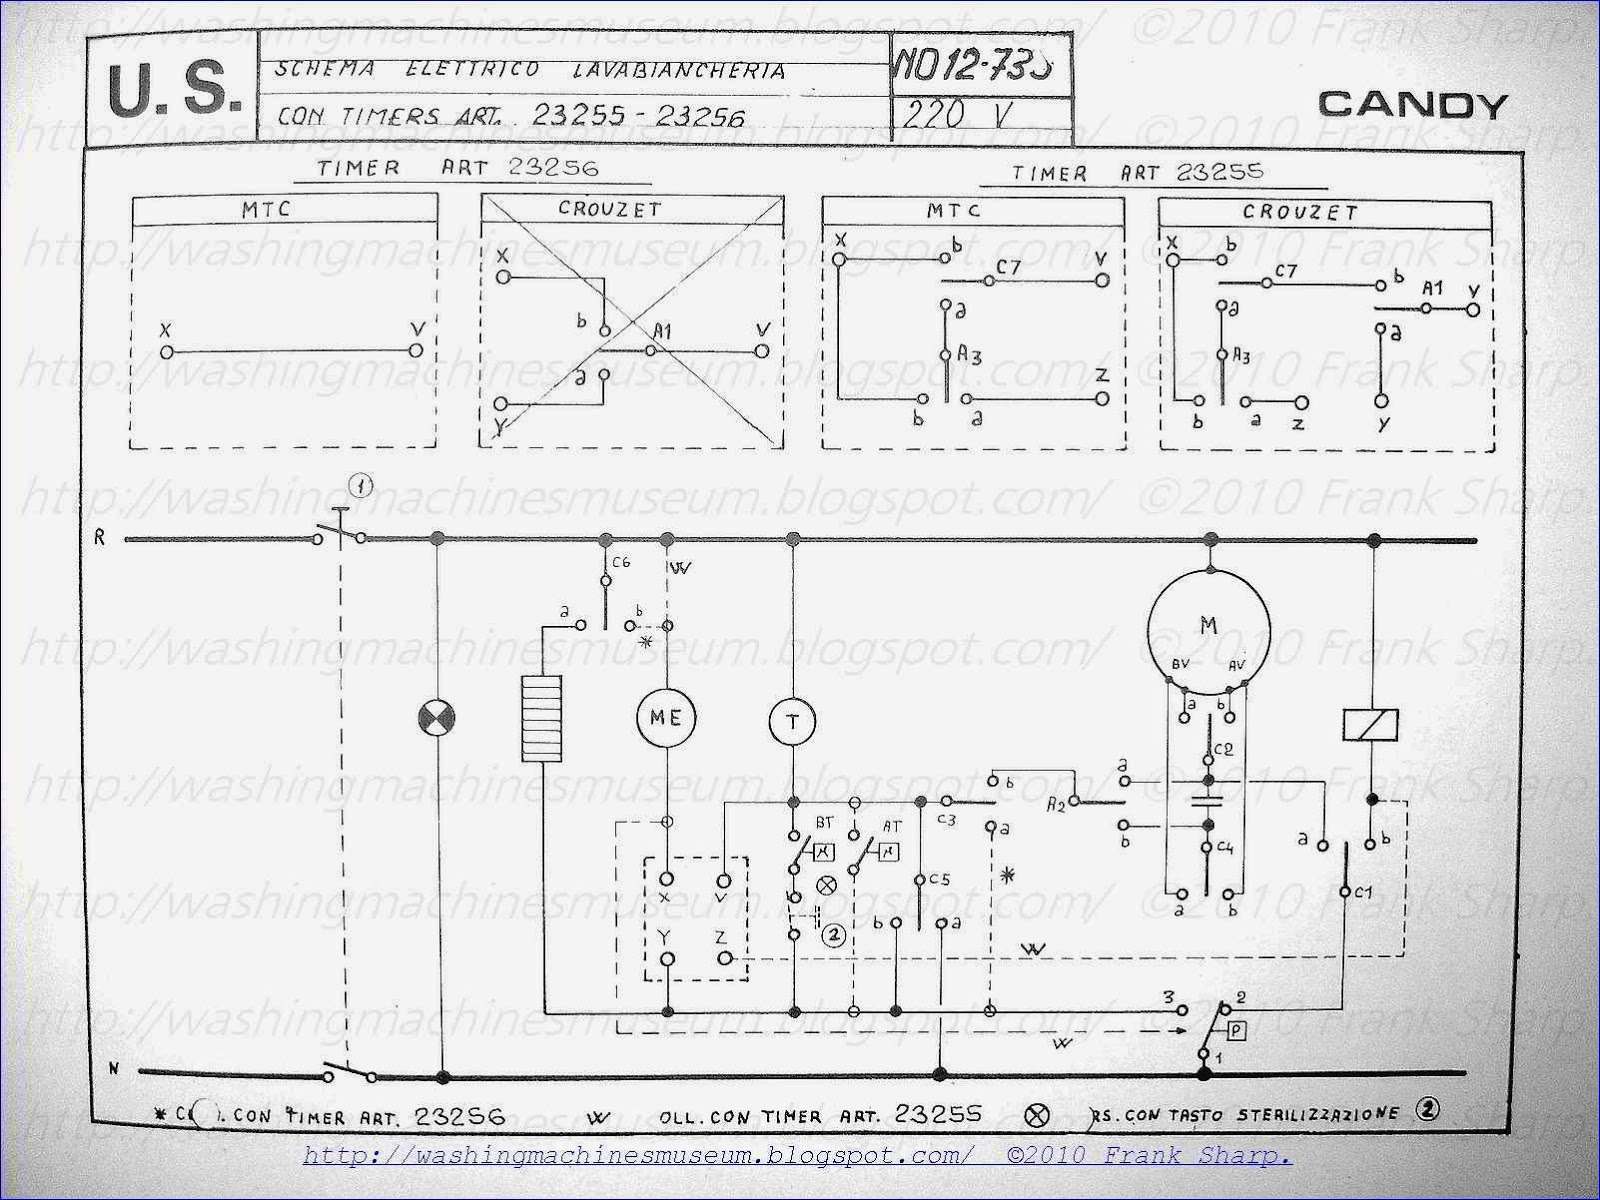 hight resolution of washer rama museum june 2012 imgh 06890 wms washer rama museum june 2012 washing machine timer wiring diagram at cita asia